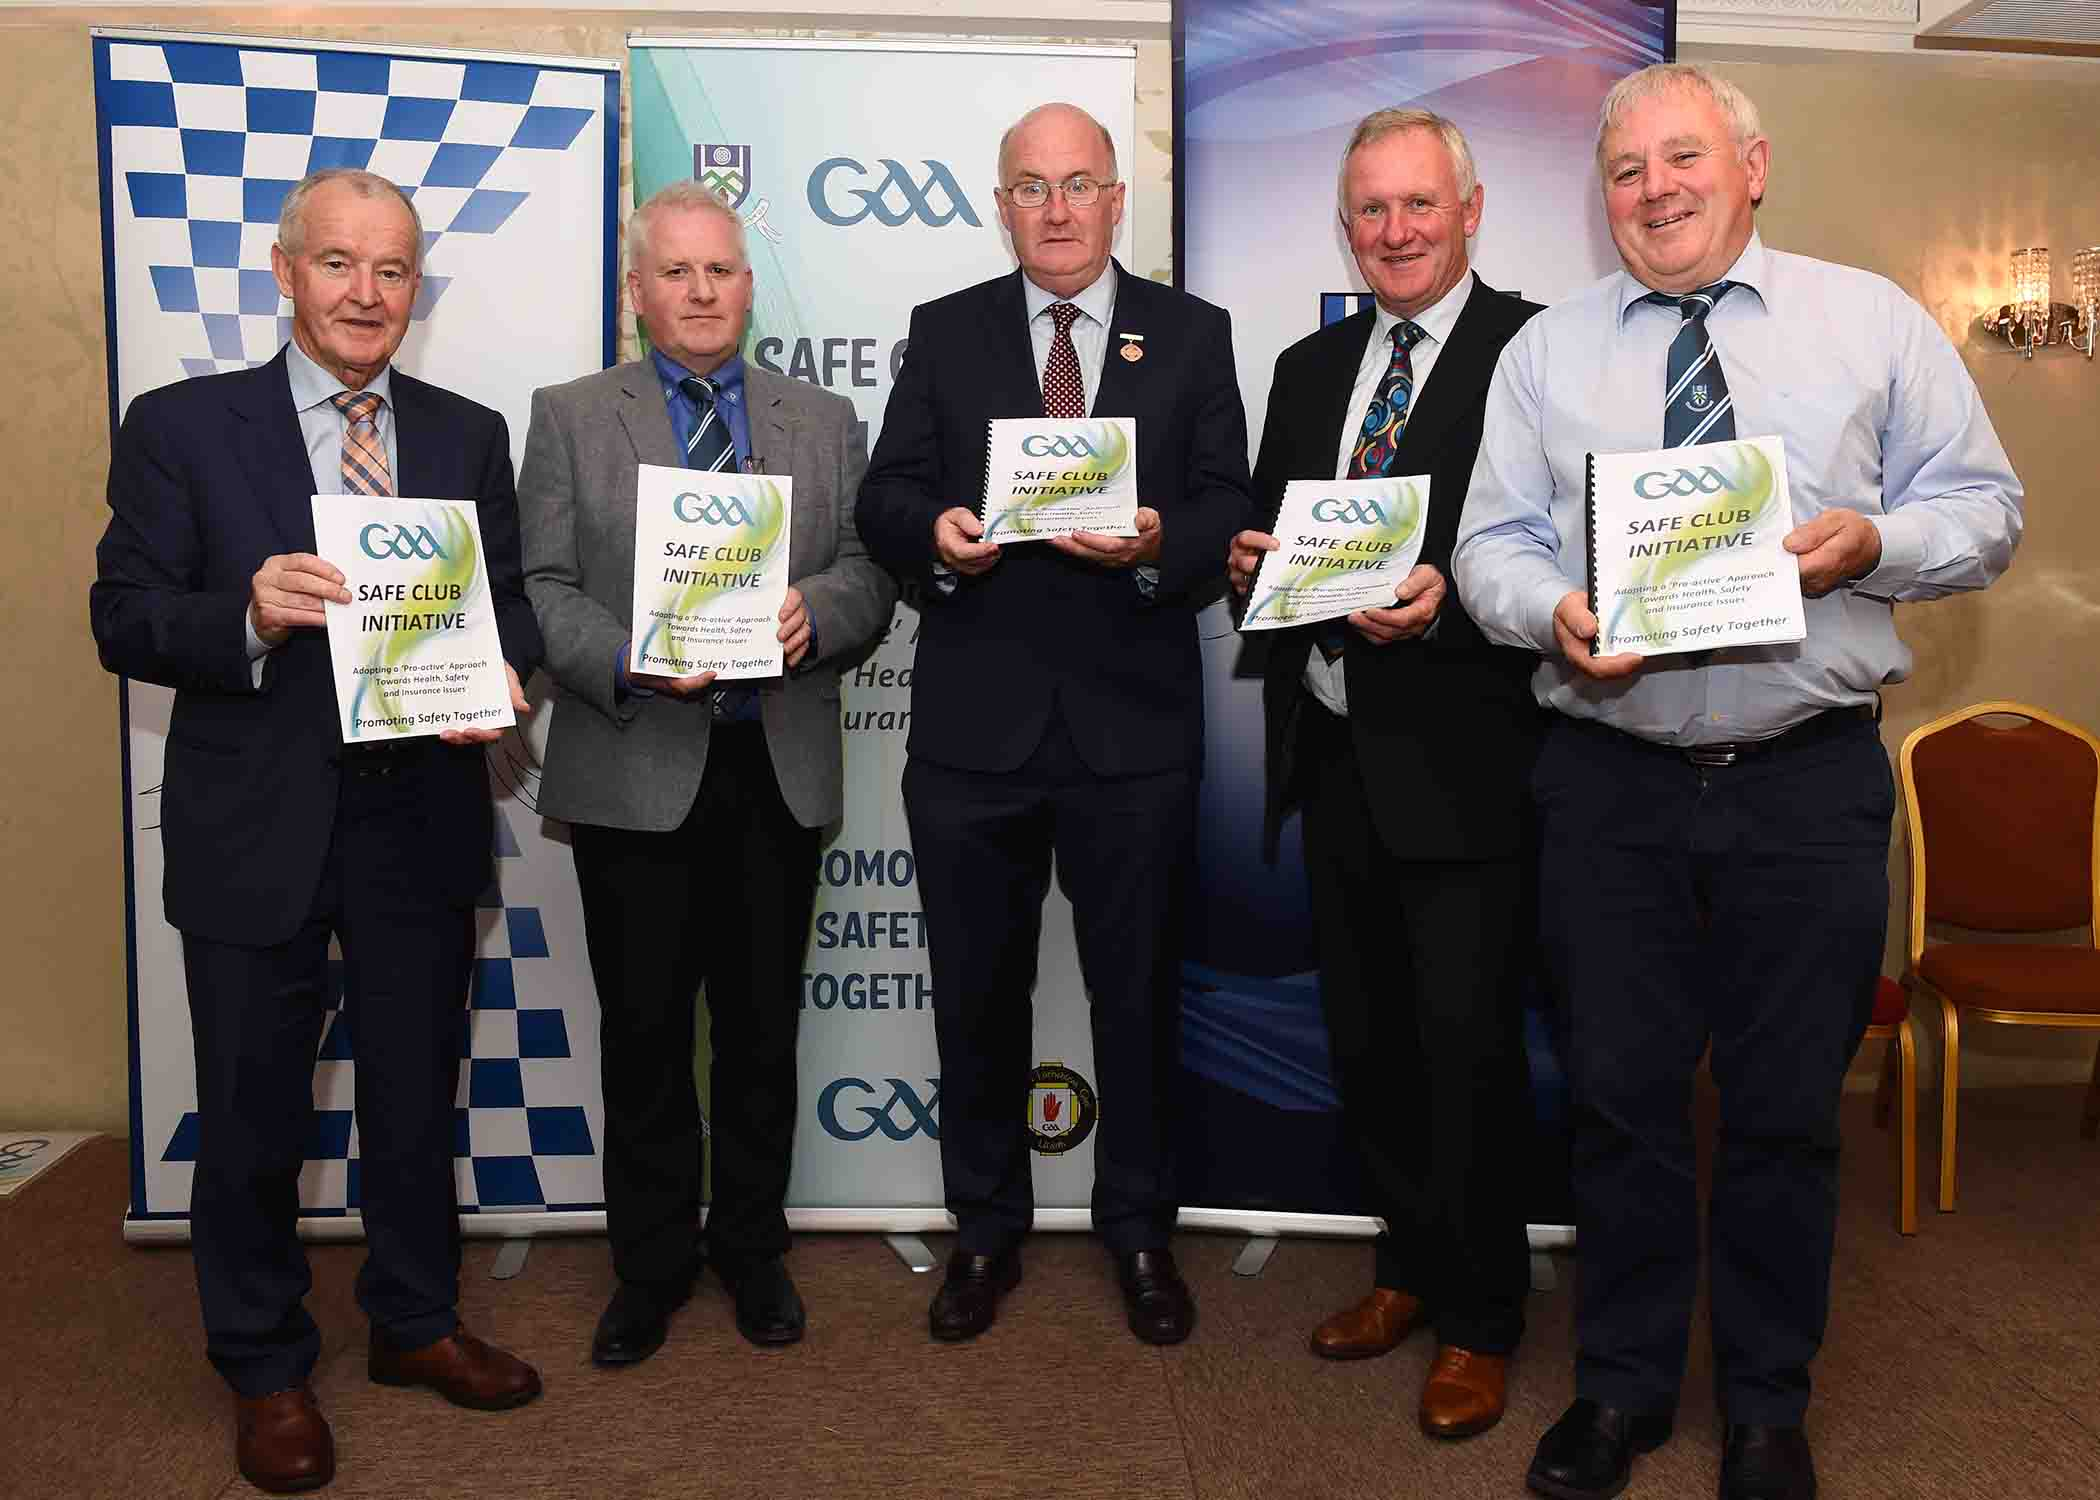 SAFE CLUB INITIATIVE LAUNCHED IN MONAGHAN.